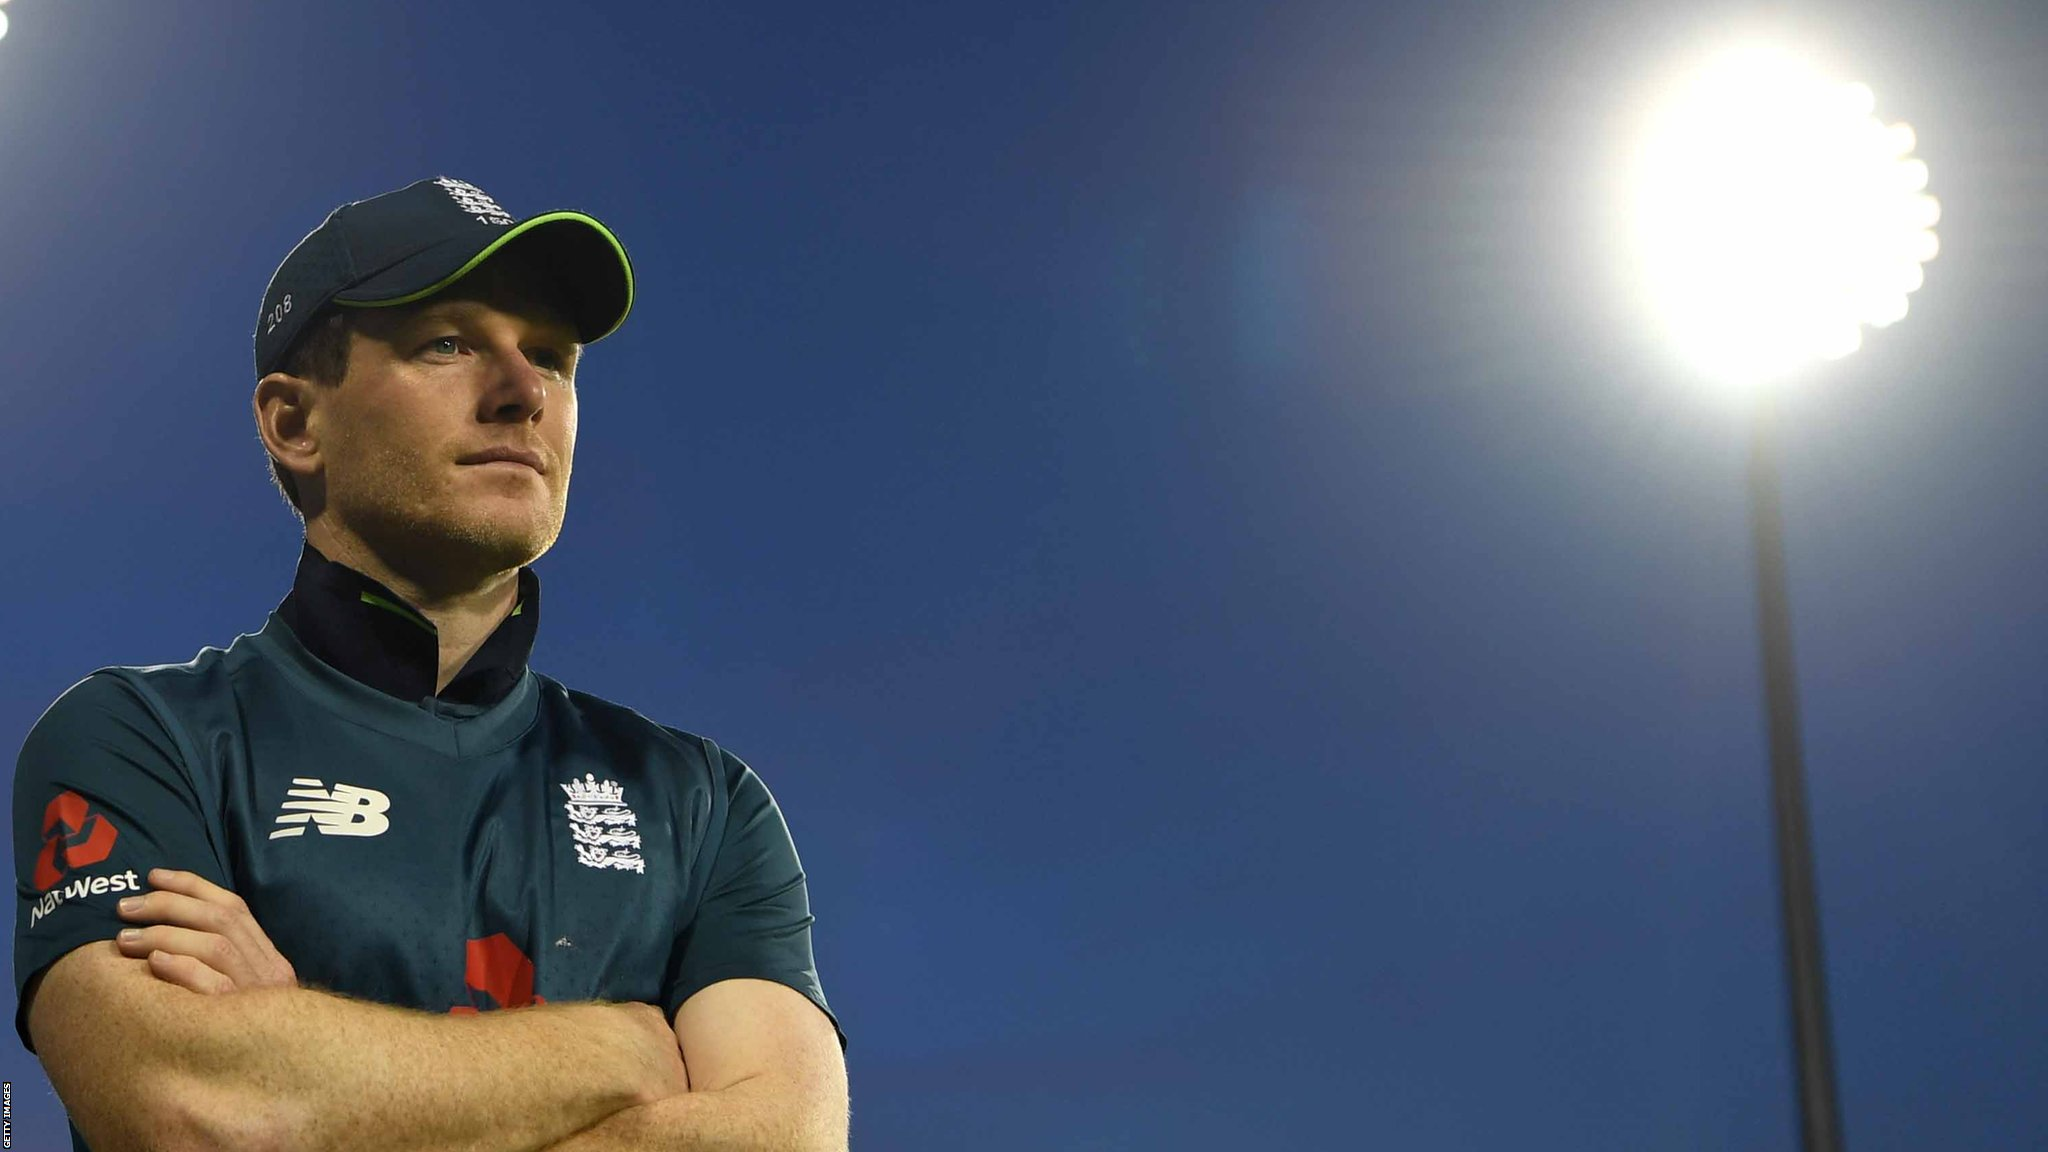 Cricket World Cup: Eoin Morgan on England's rise to top of world rankings